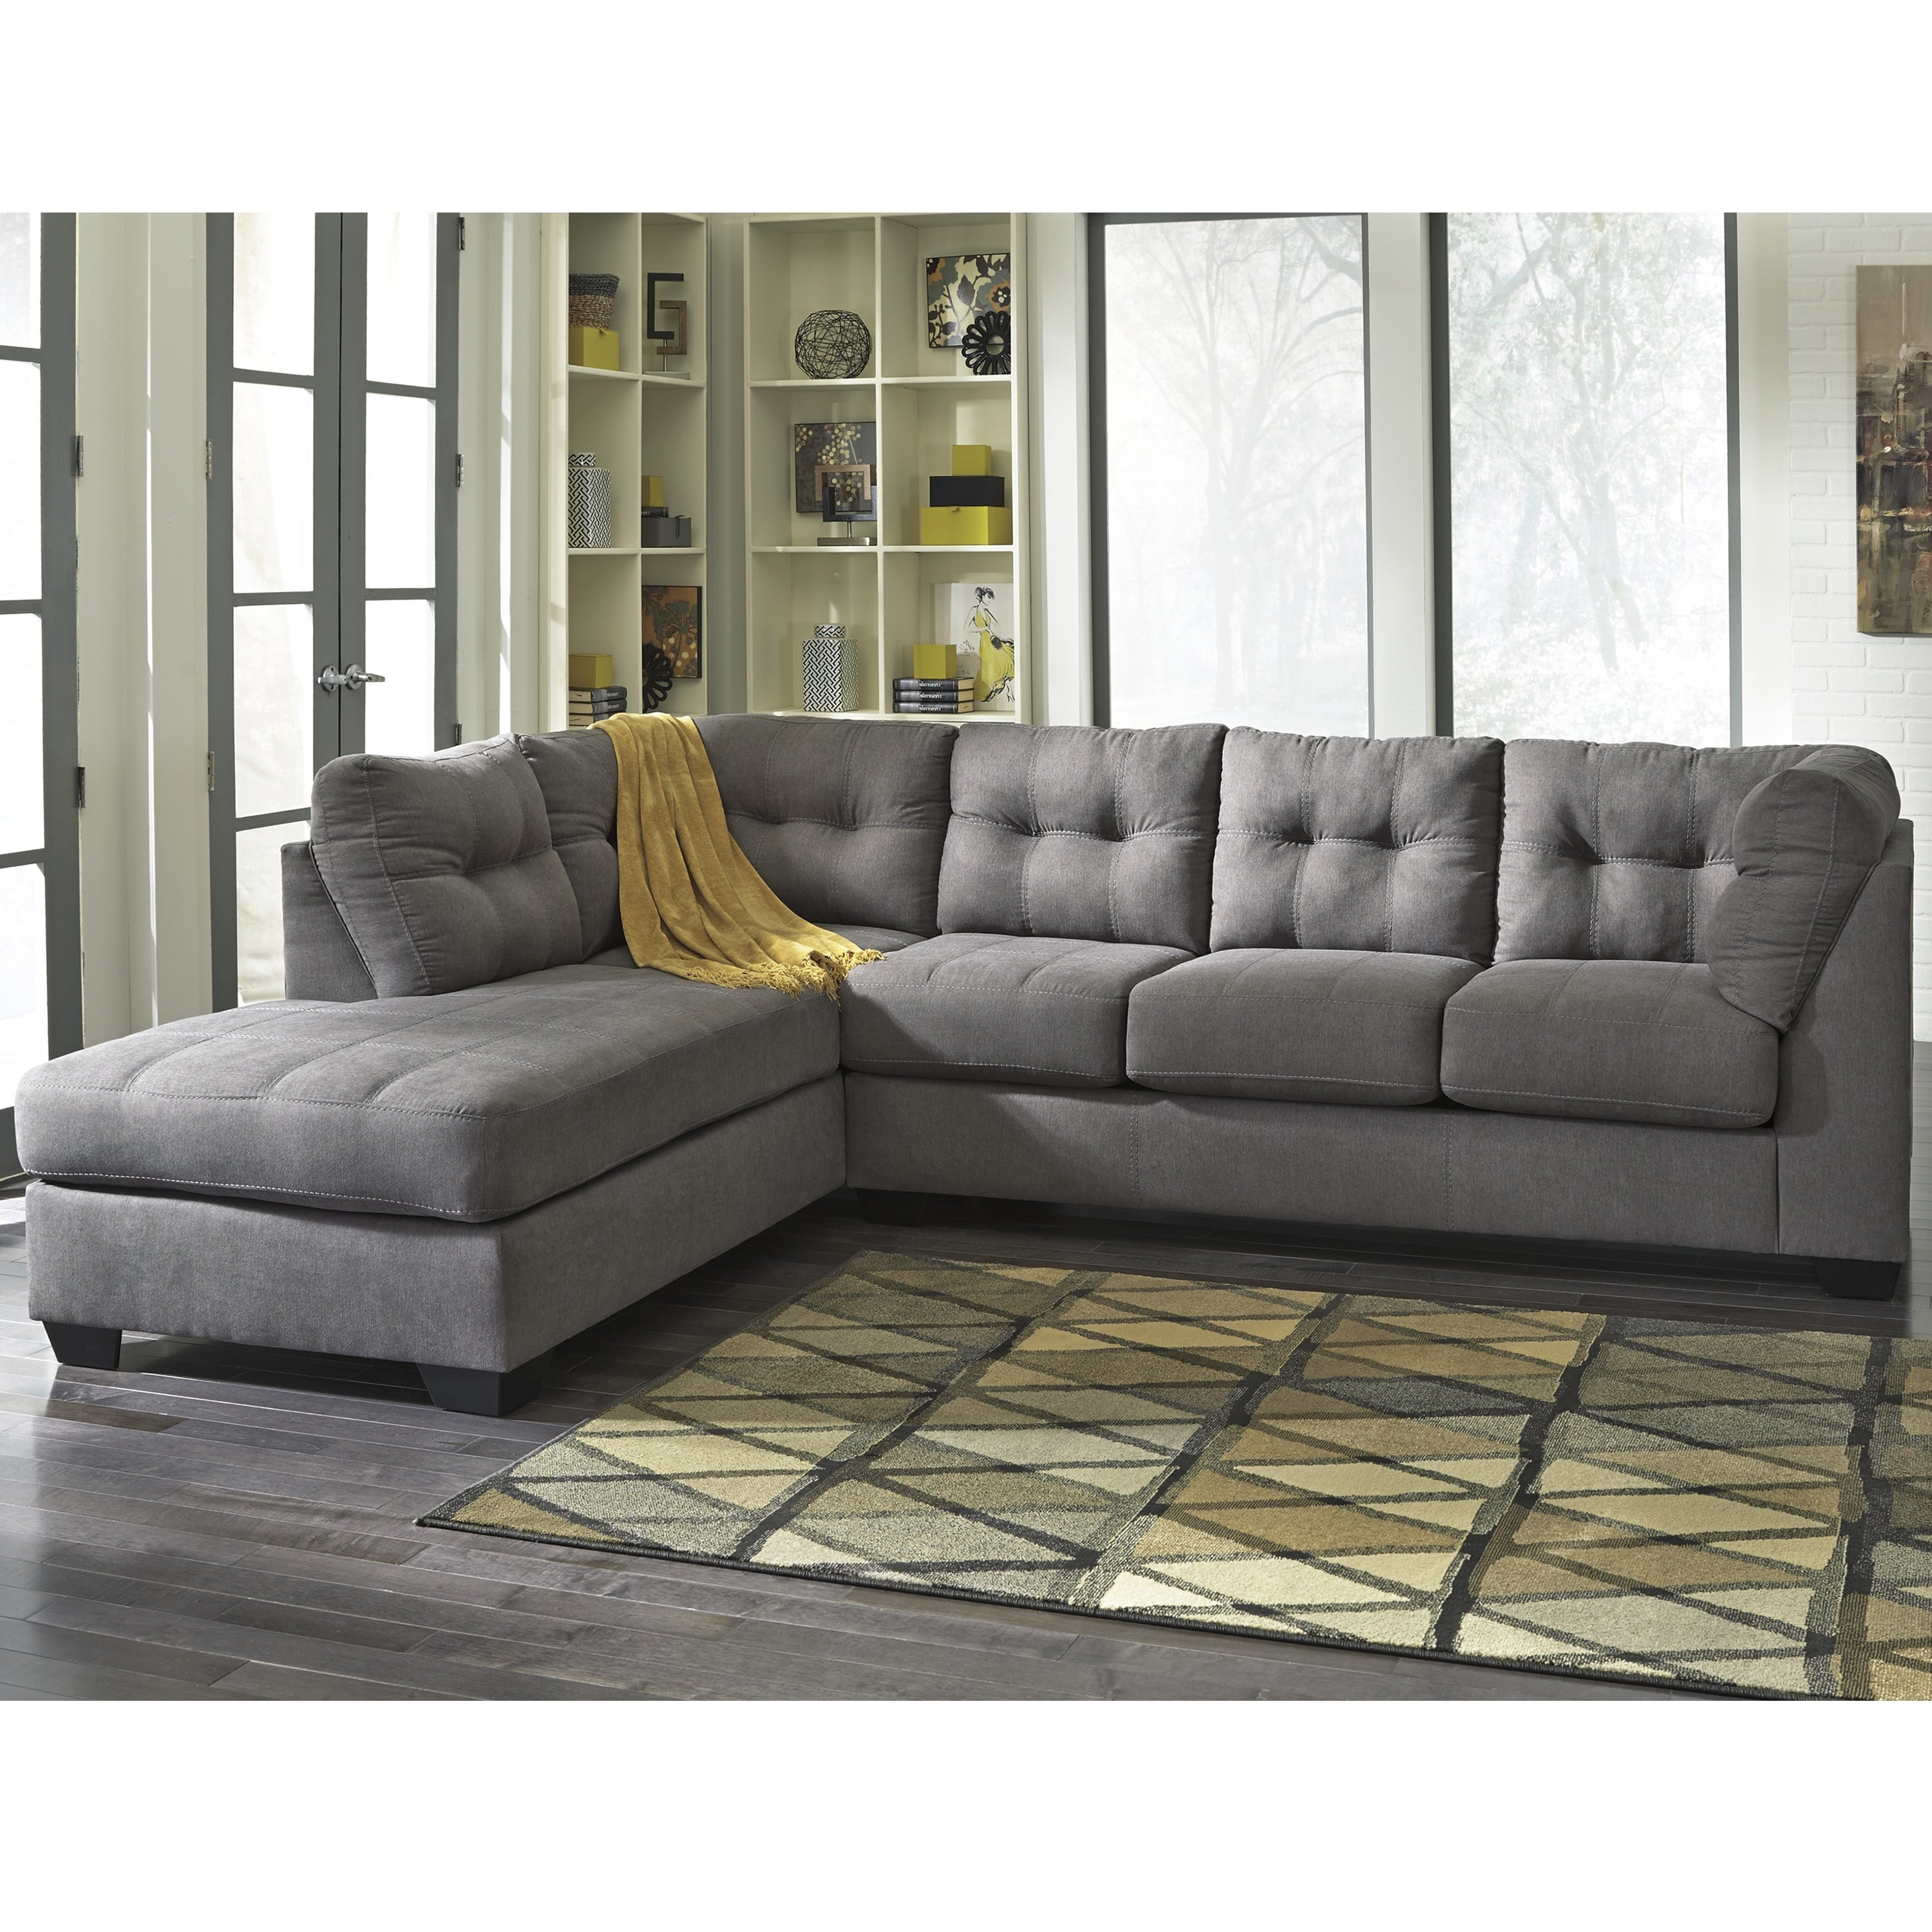 Shop Clay Alder Home Wells Microfiber Sectional With Left Side Inside Alder 4 Piece Sectionals (View 10 of 25)